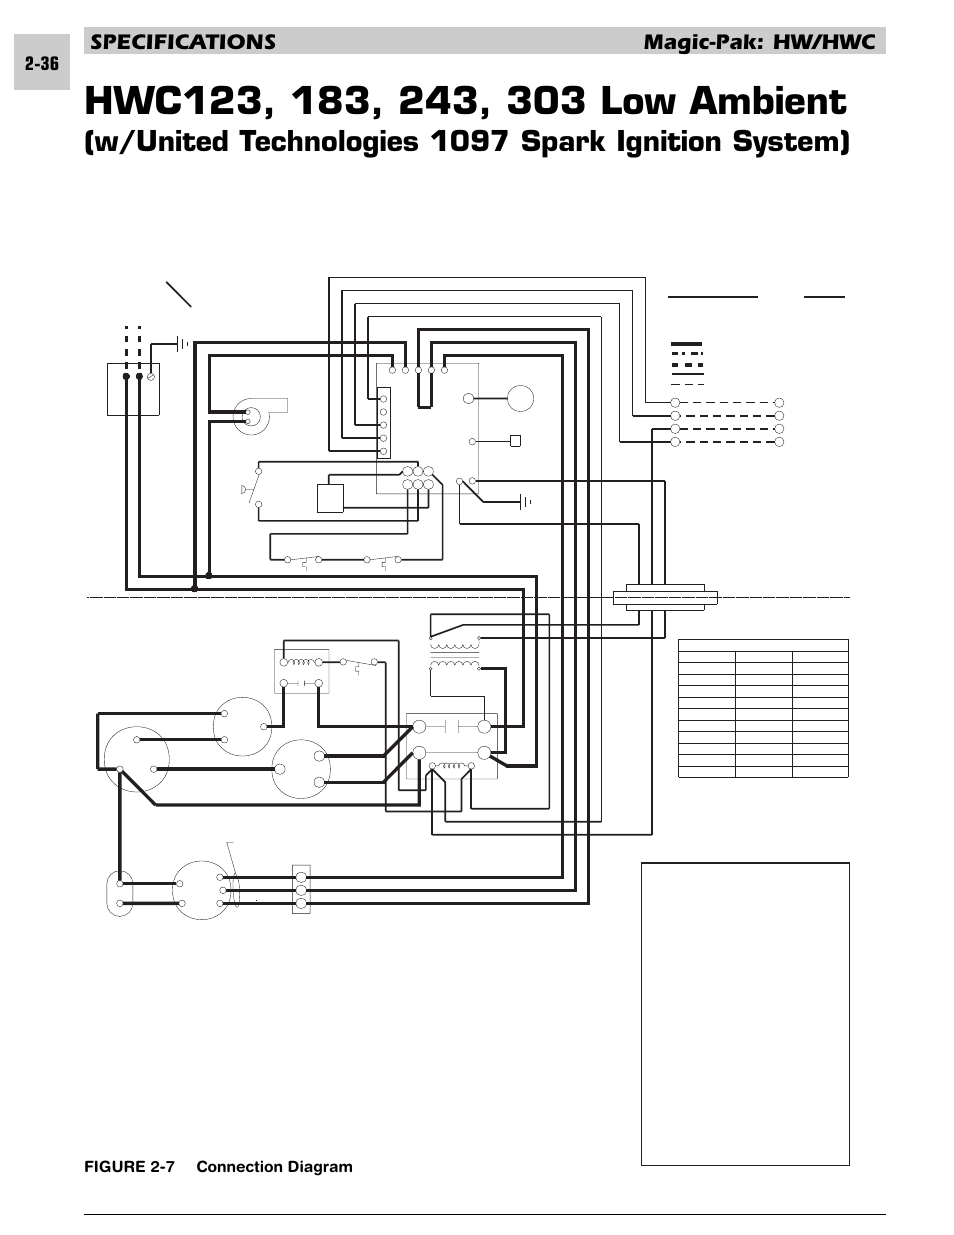 w  united technologies 1097 spark ignition system   specifications magic hwc  figure 2